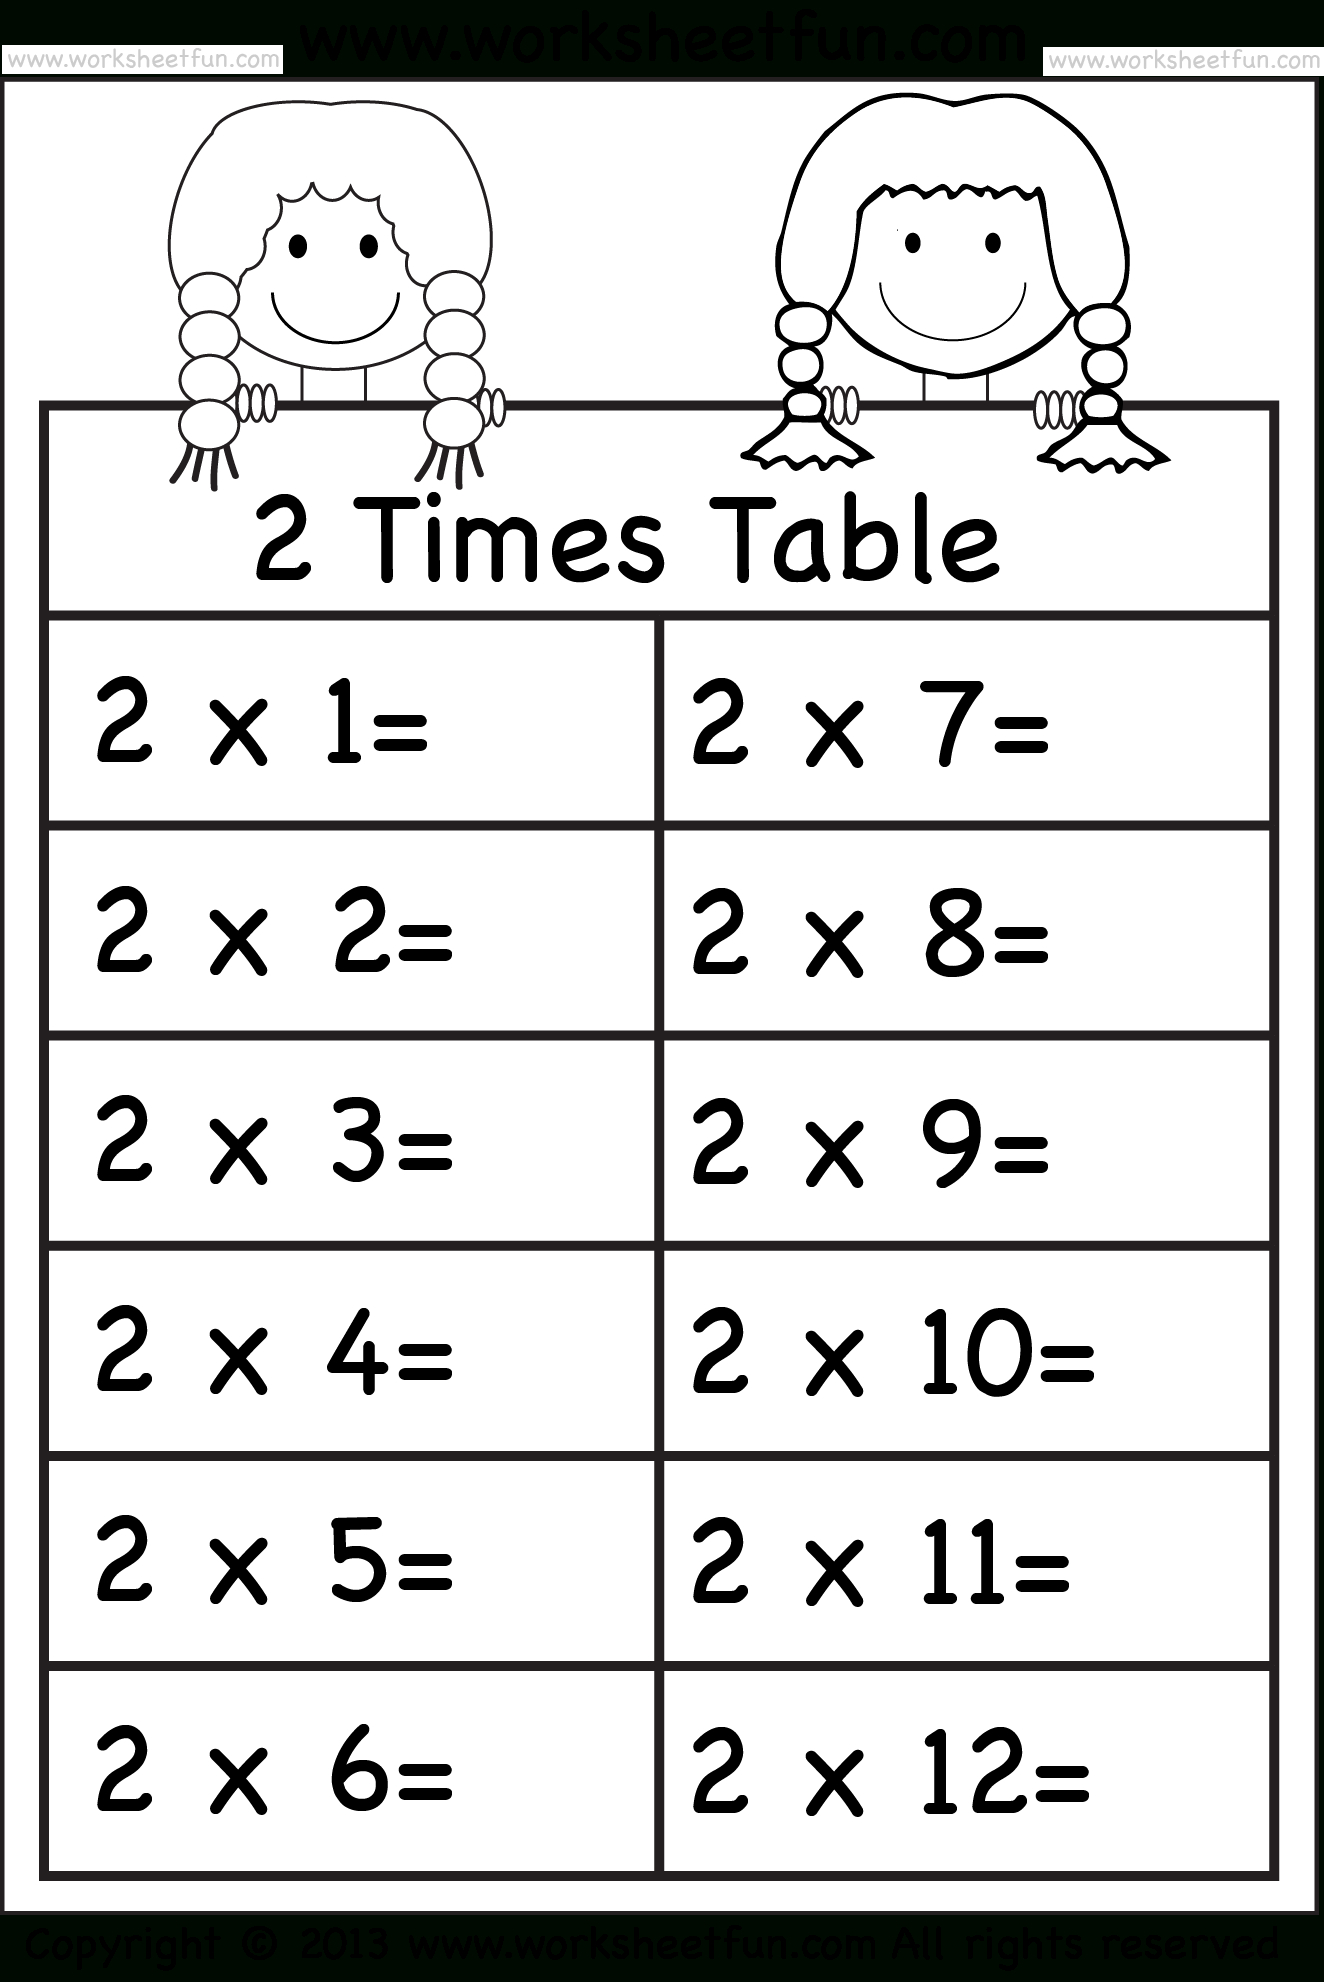 Times Tables Worksheets – 2, 3, 4, 5, 6, 7, 8, 9, 10, 11 And 12   5 Times Table Worksheet Printable